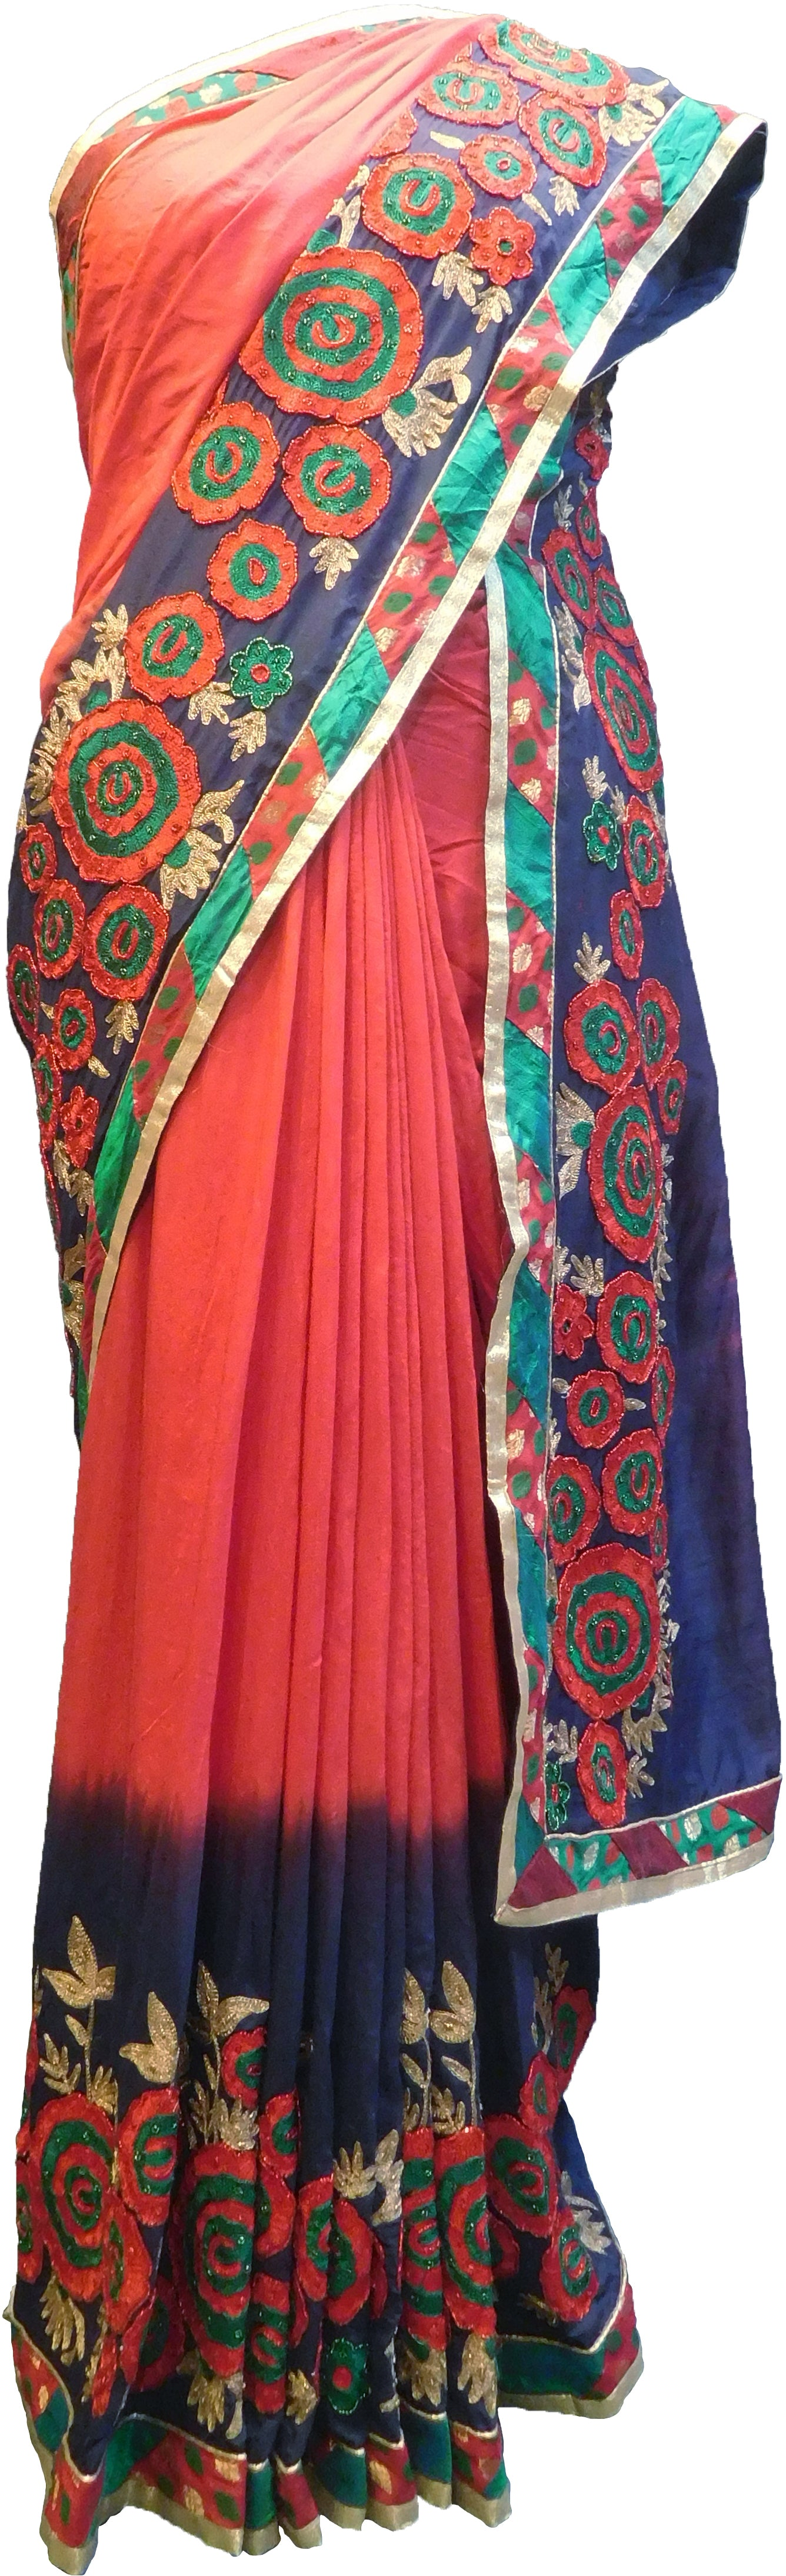 SMSAREE Red& Blue Designer Wedding Partywear Satin (Silk) Thread Beads & Zari Hand Embroidery Work Bridal Saree Sari With Blouse Piece F223